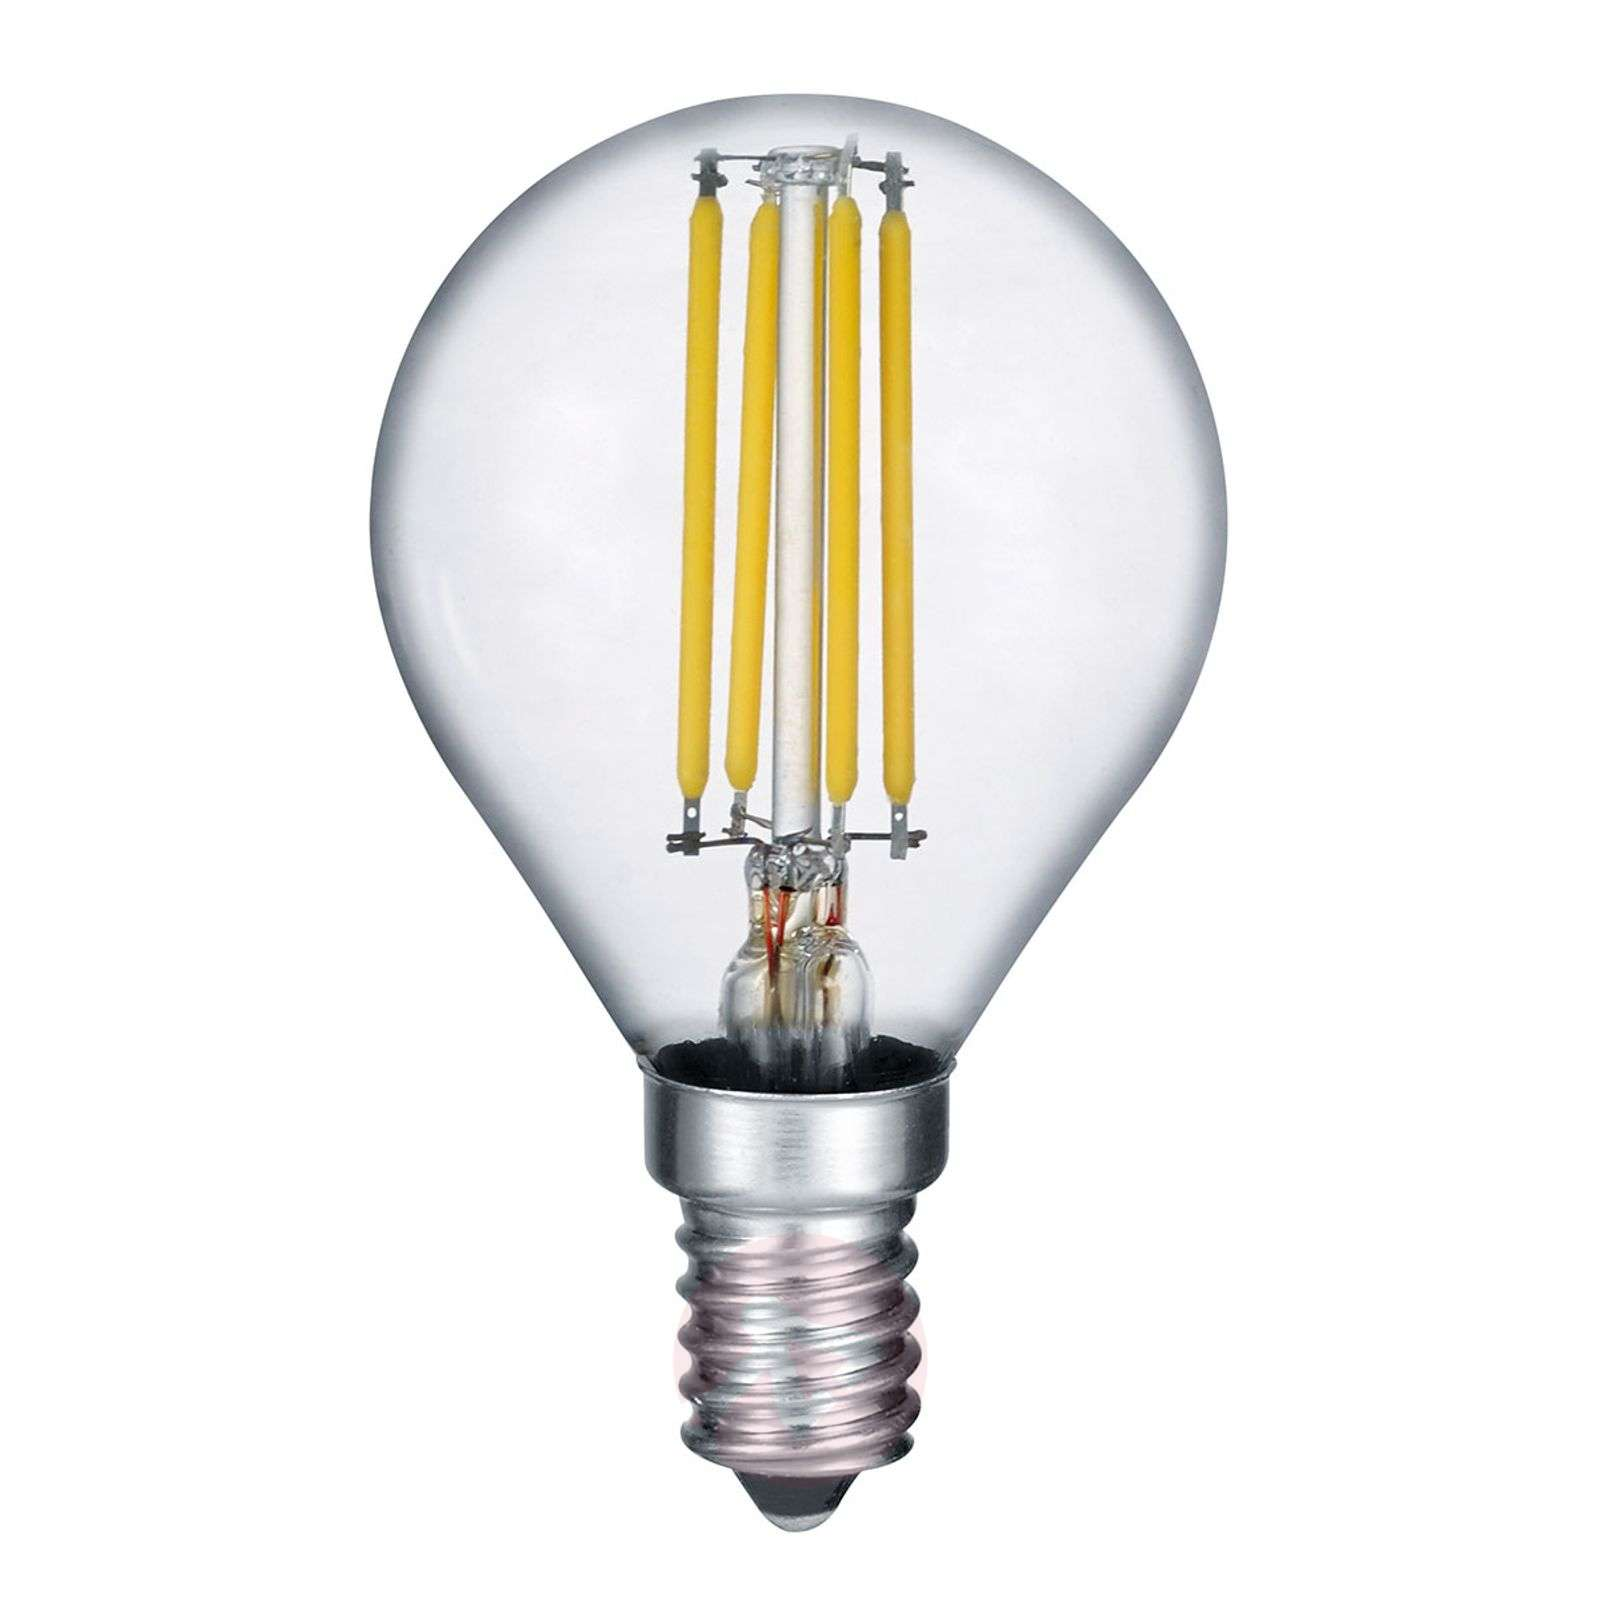 LED bulb E14 4 W filament, 2,700 K switch dimmer-9004818-01